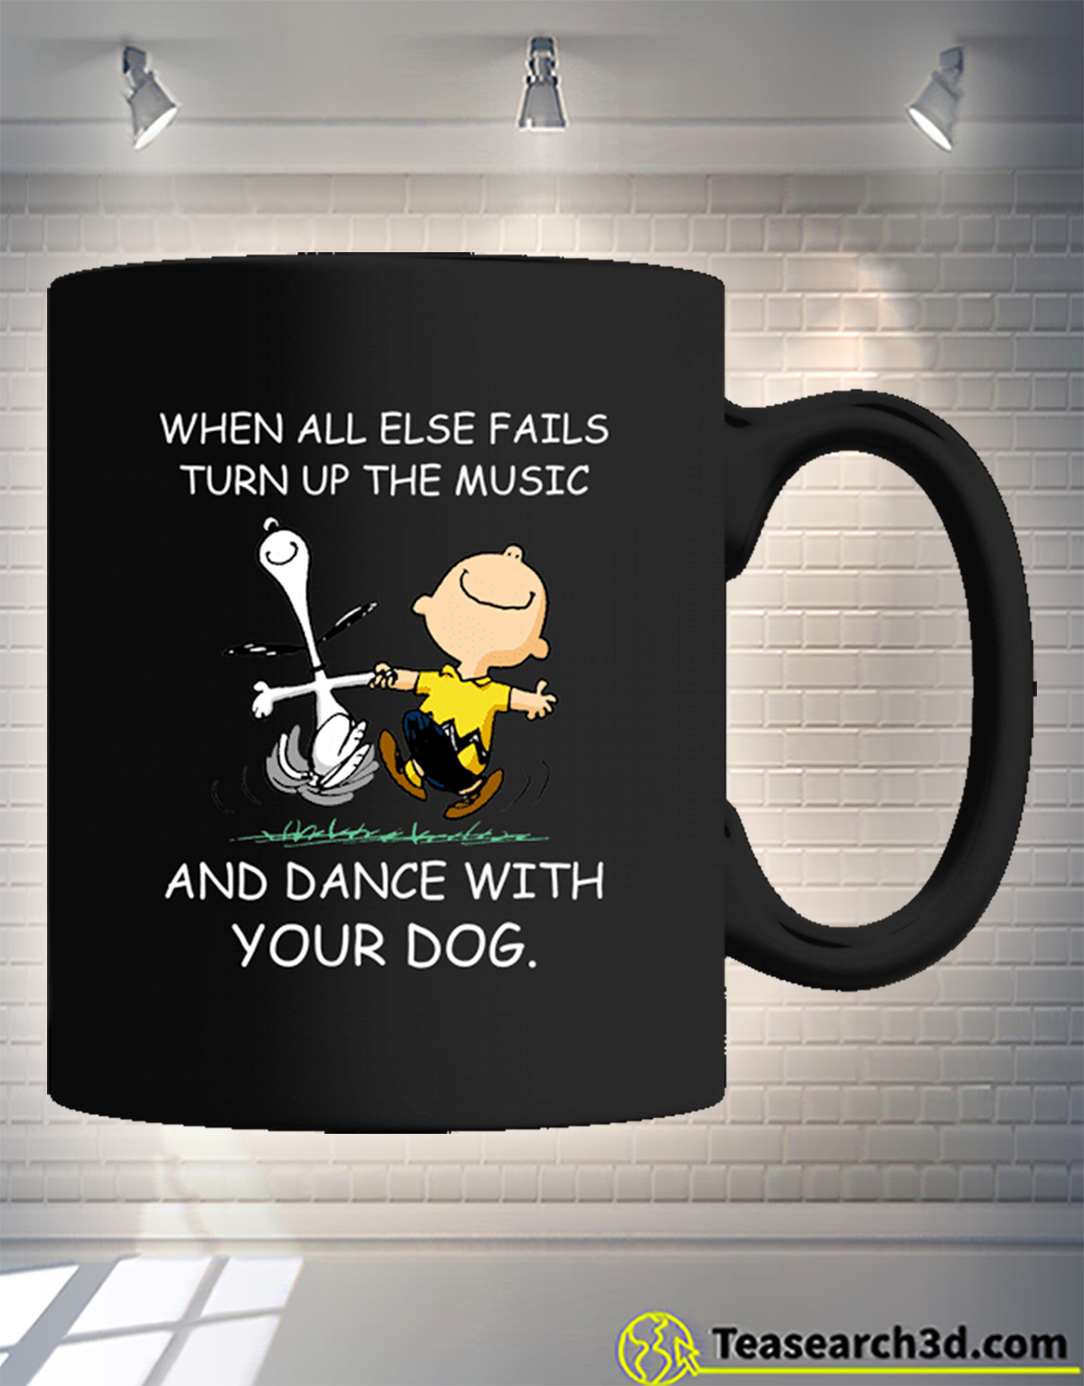 Snoopy and charlie brown when all else fails turn up the music mug 15oz